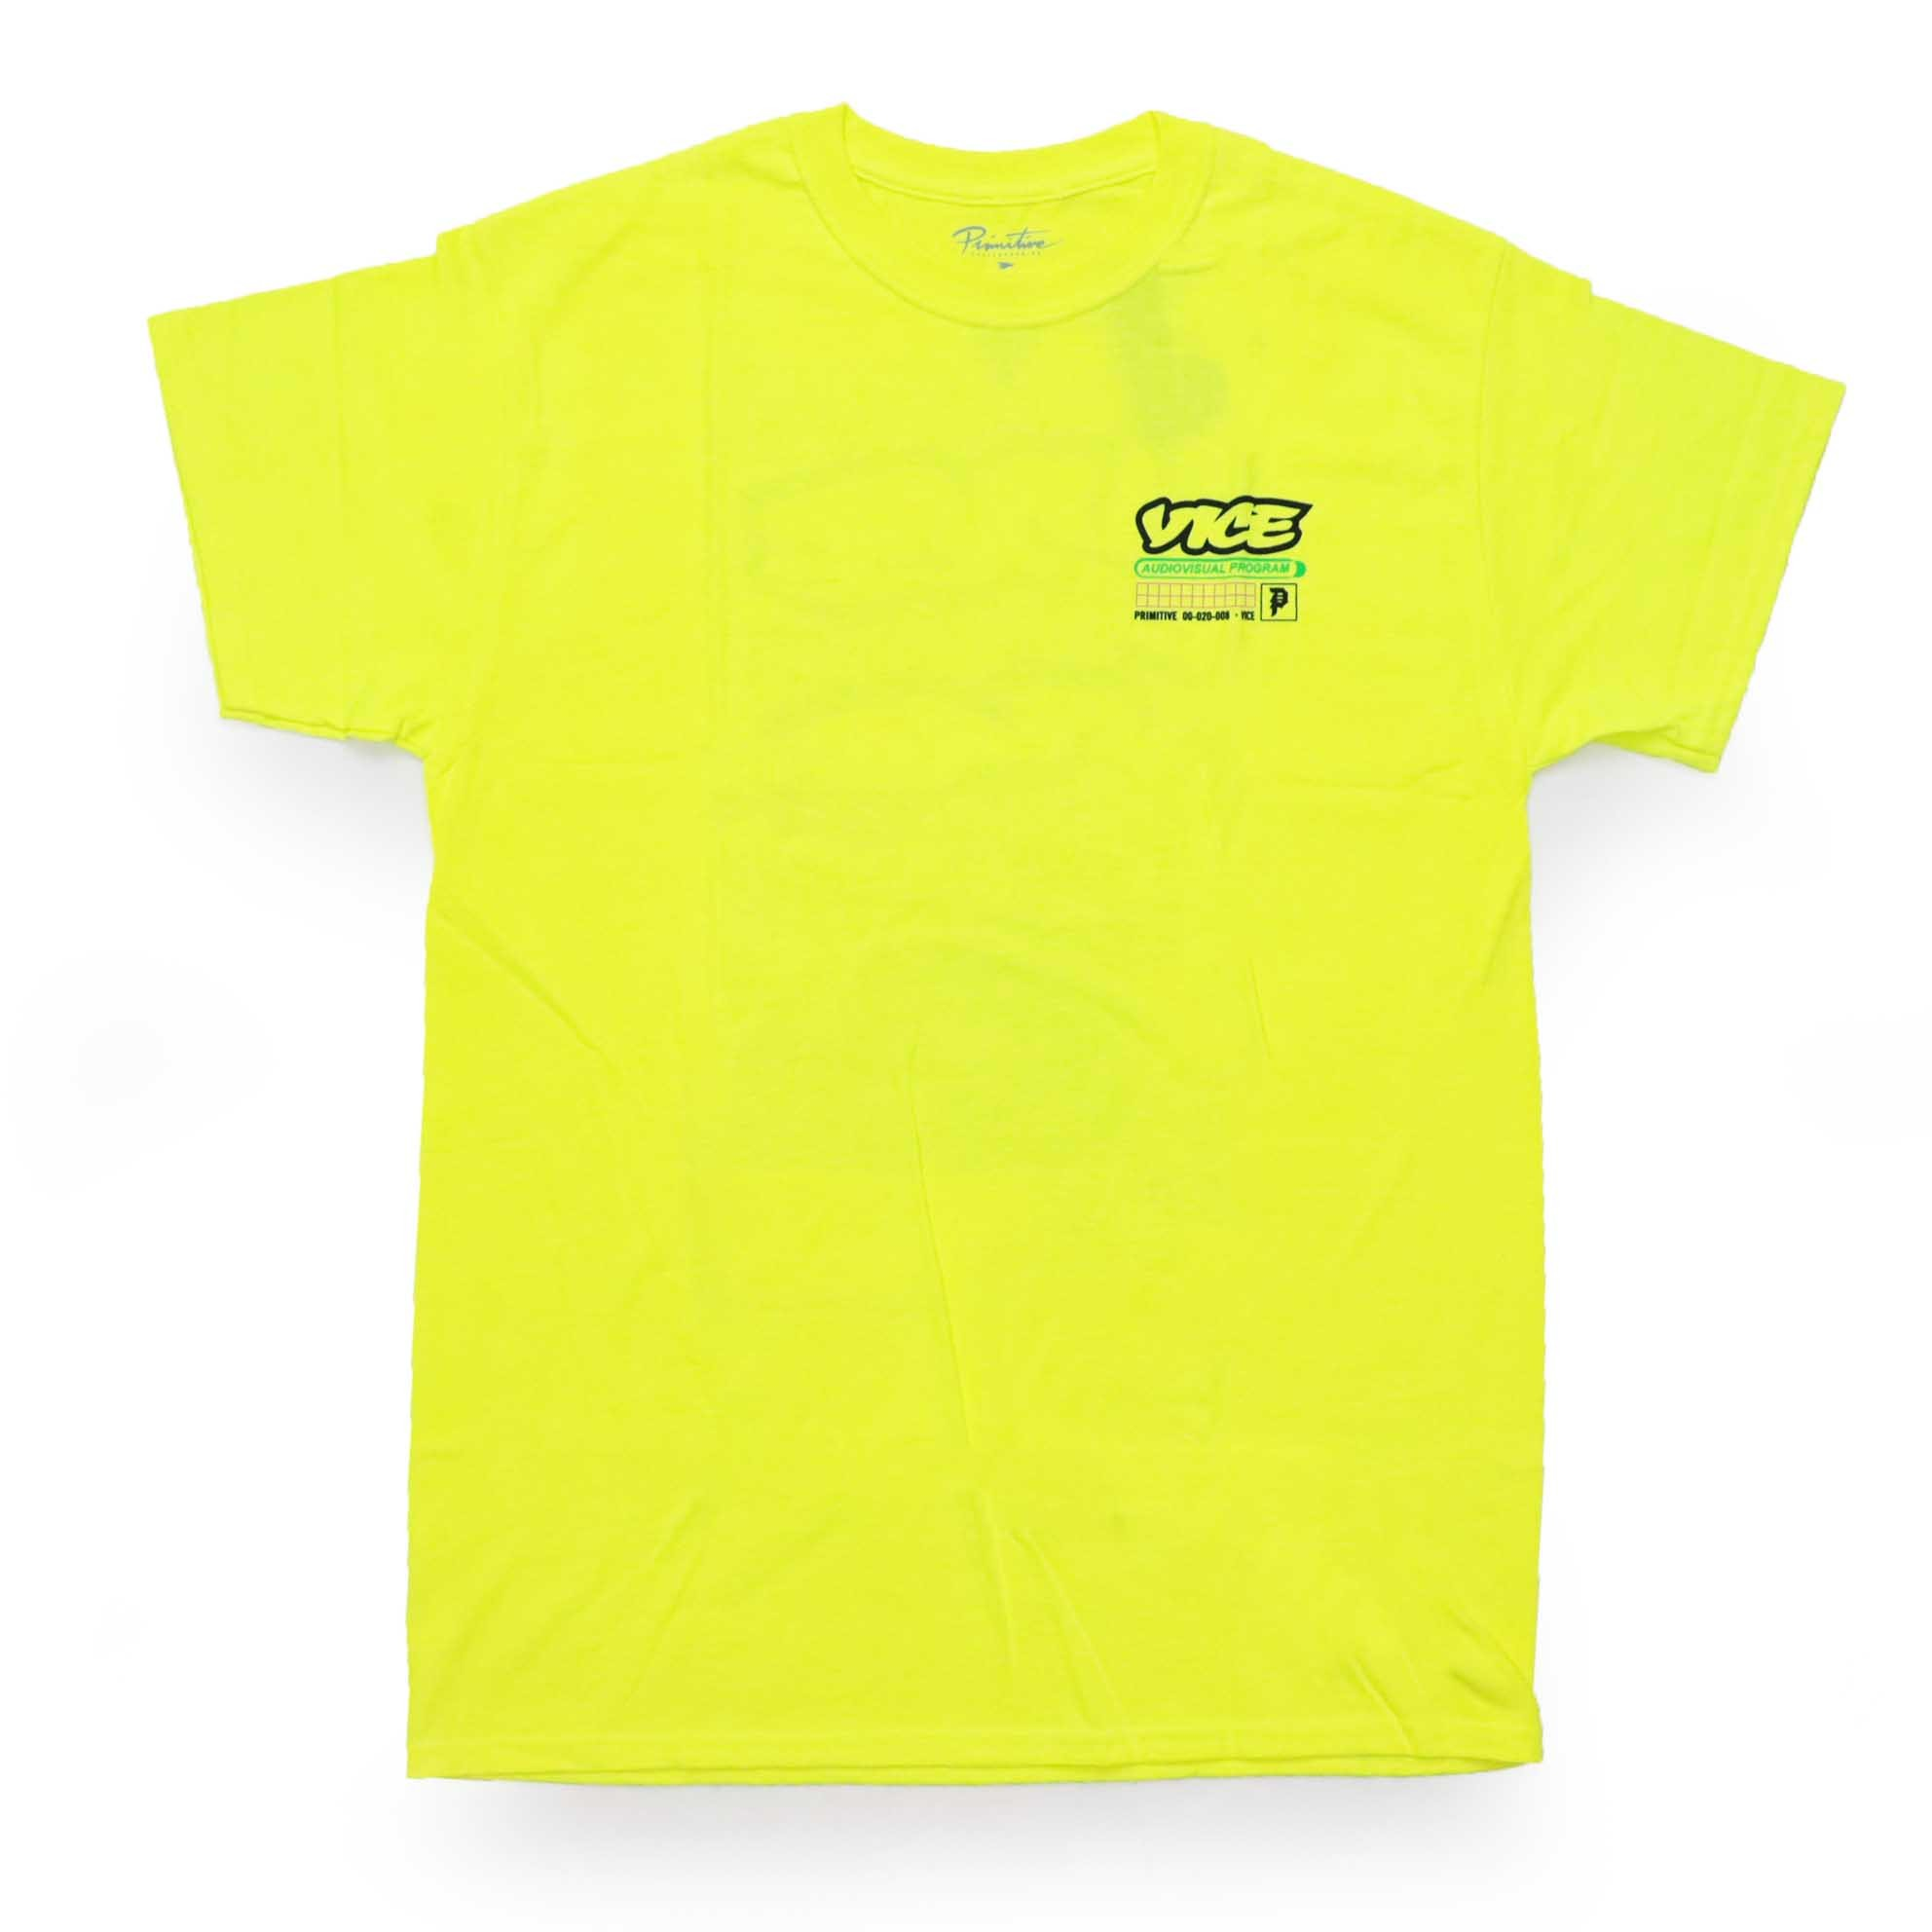 Camiseta Primitive x Vice Program - Verde Neon (Importado)